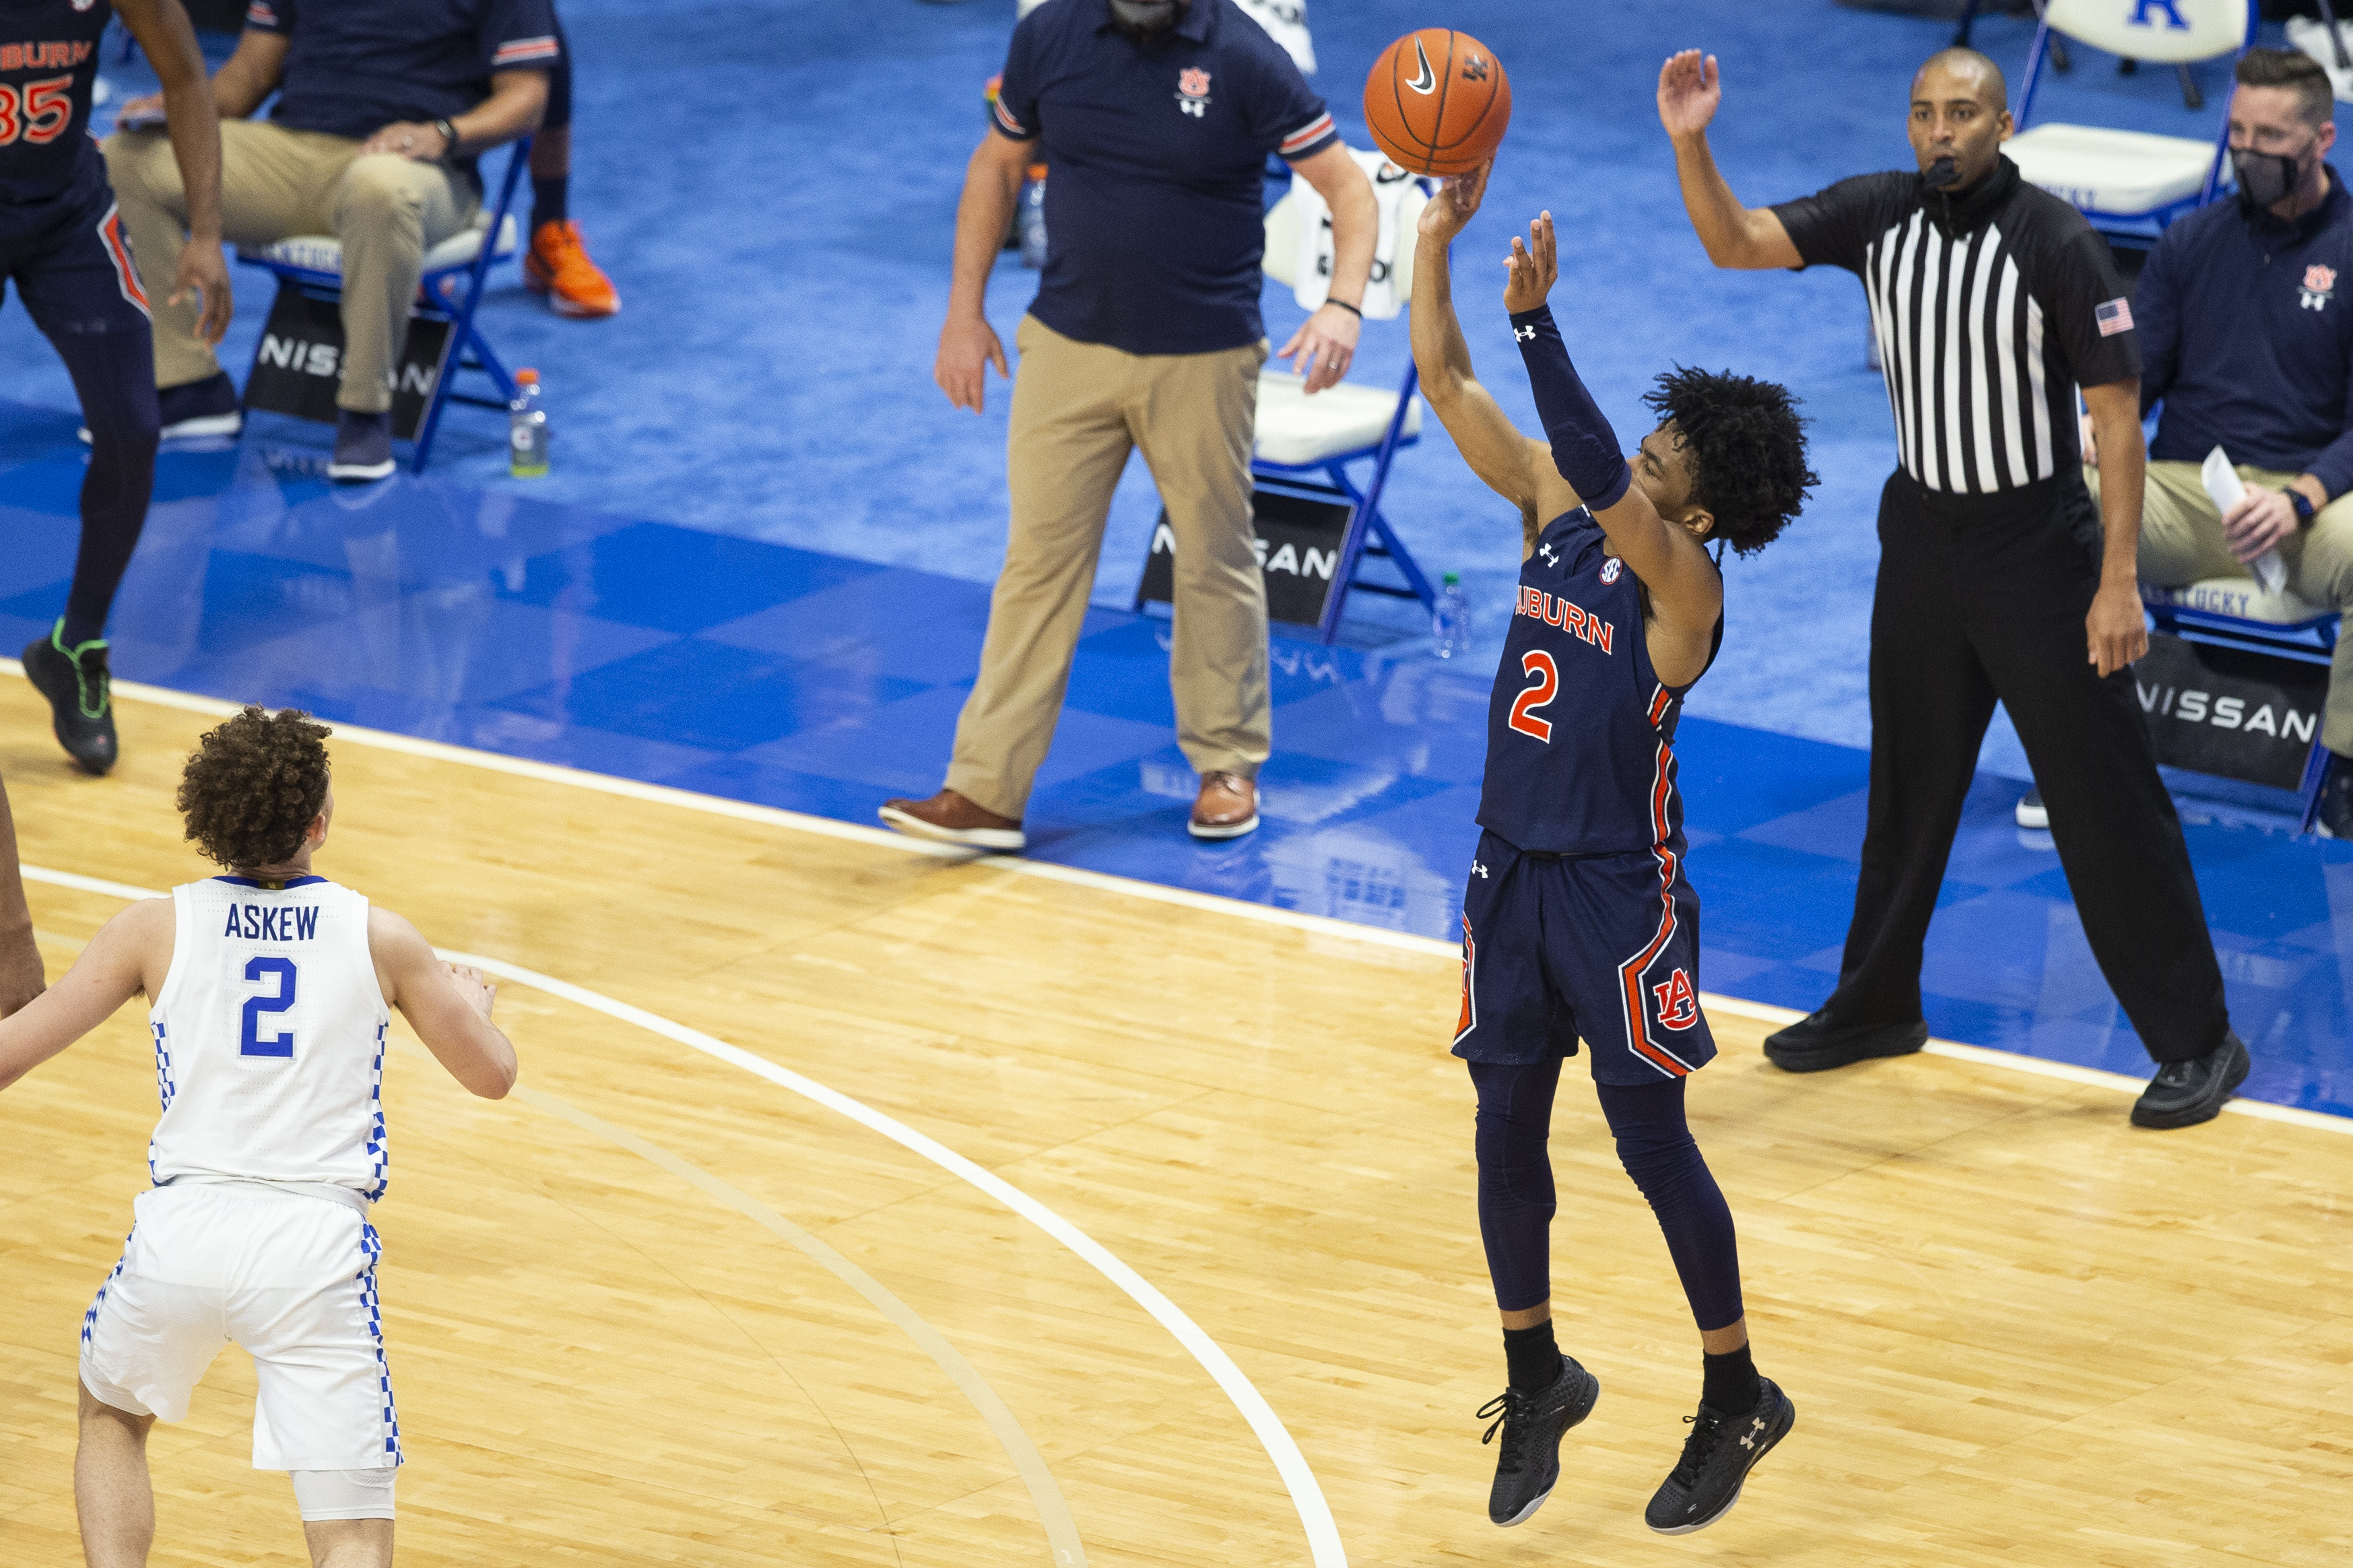 Auburn Tigers guard Sharife Cooper shoots a three-pointer during the second half of the game against the Kentucky Wildcats at Rupp Arena at Central Bank Center.